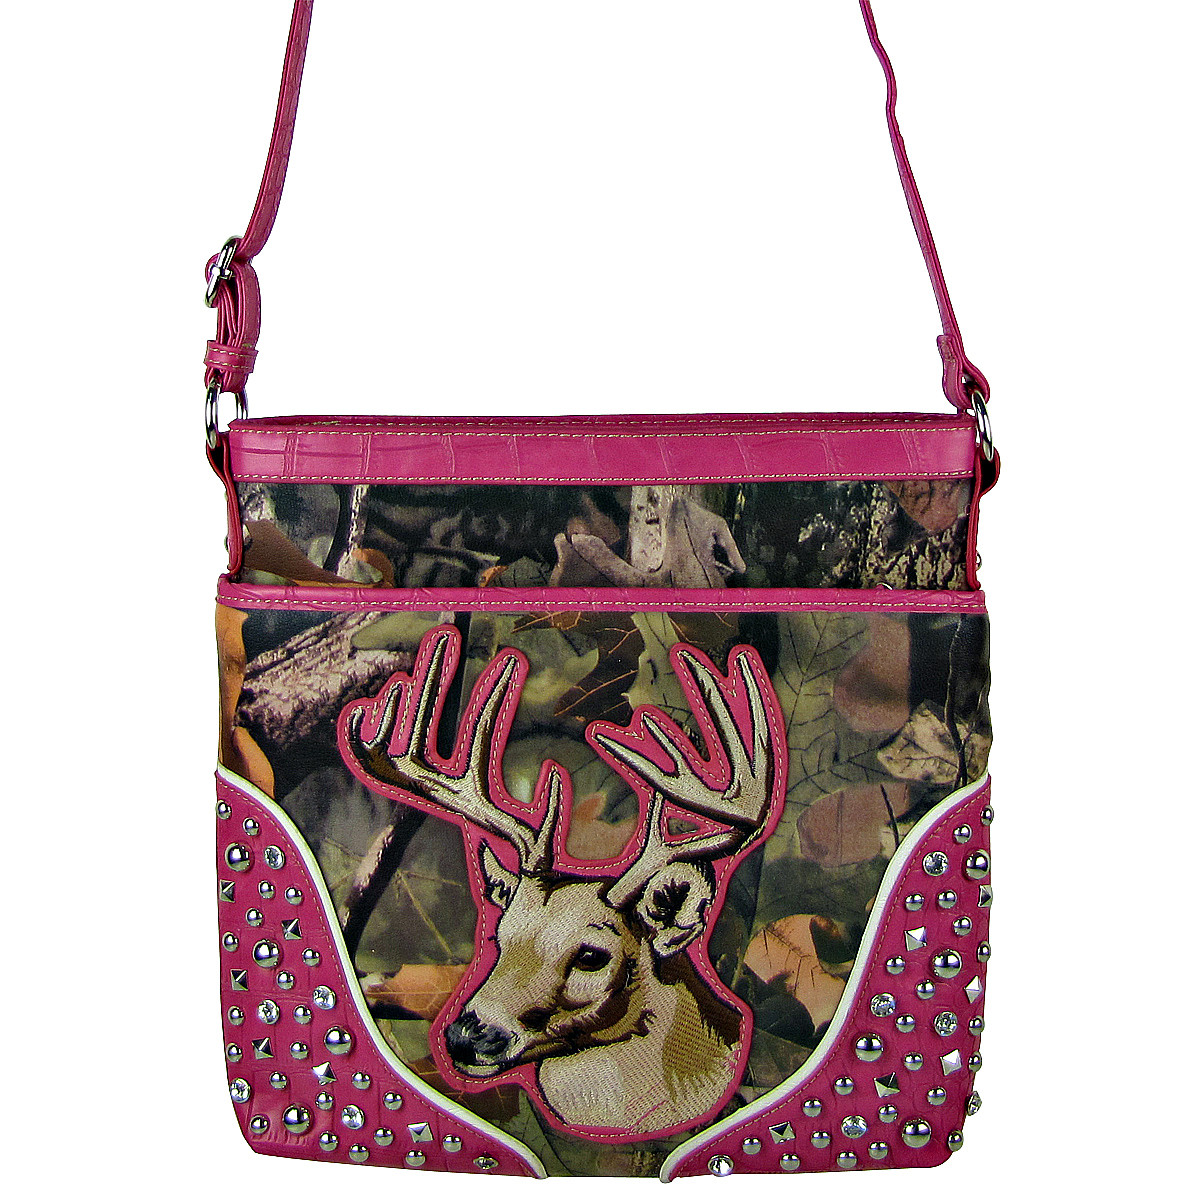 HOT PINK CAMO STUDDED RHINESTONE STITCHED DEER LOOK MESSENGER BAG MB1-HL12960HPK